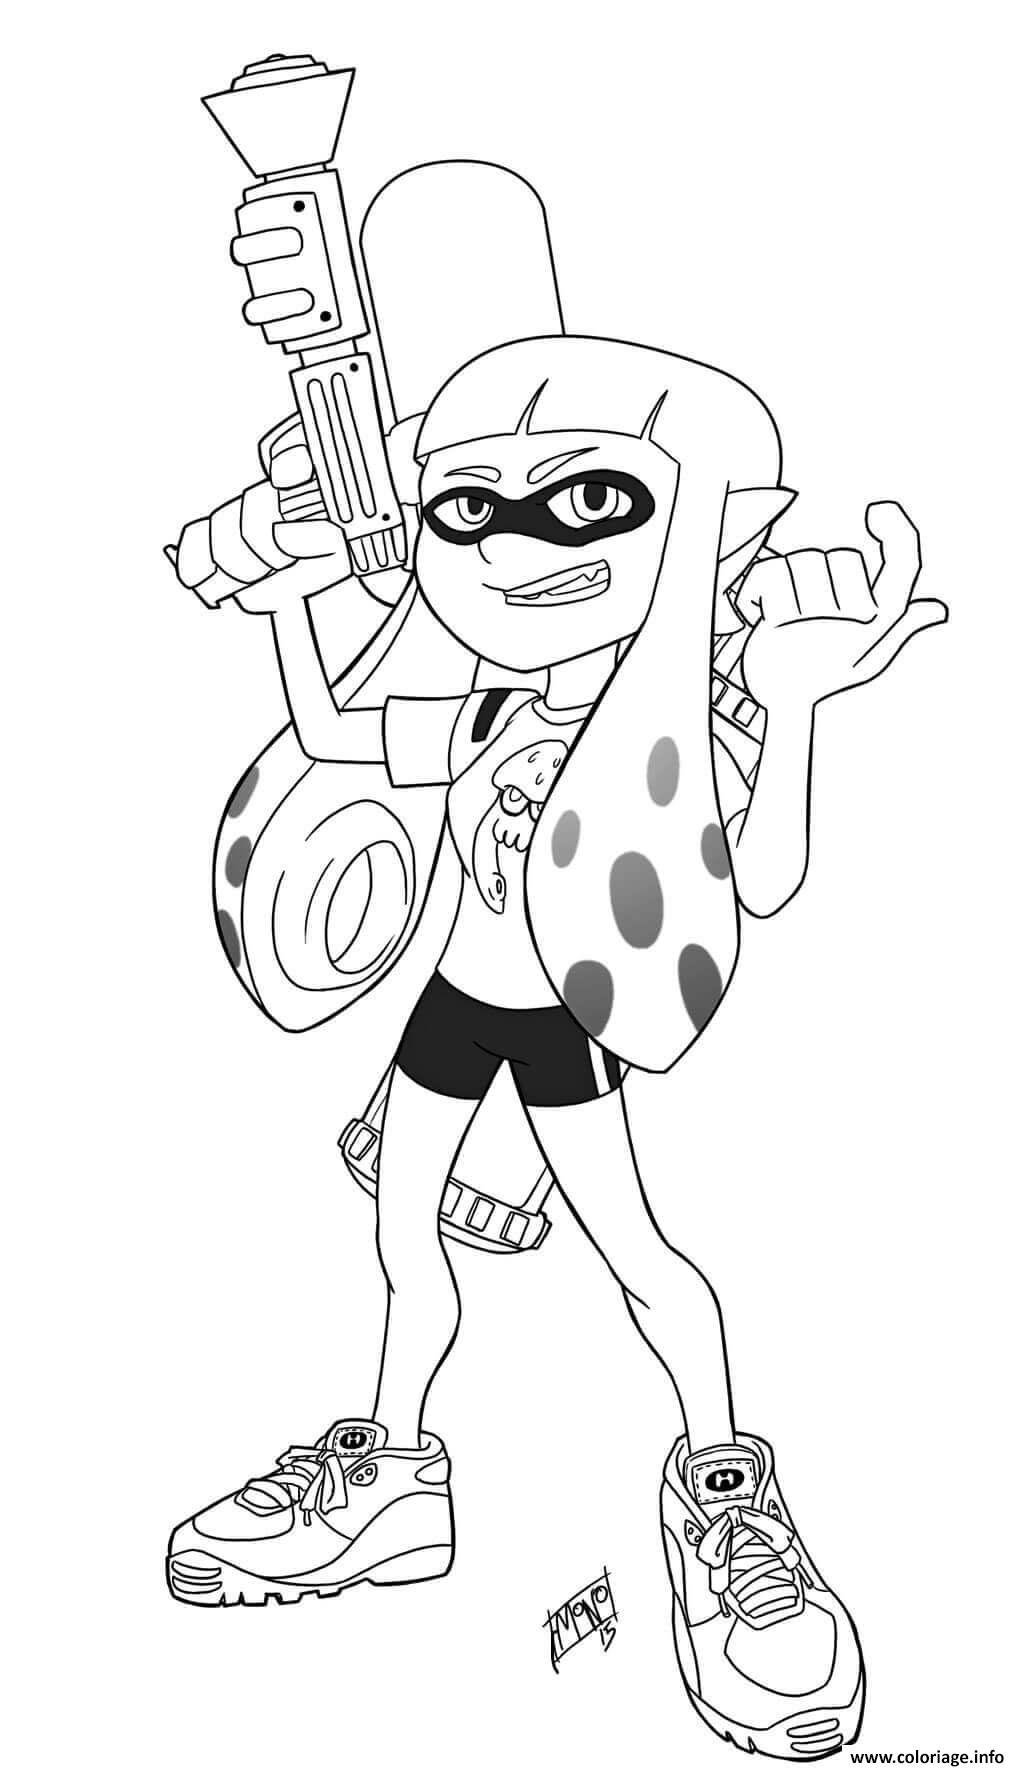 Coloriage Inklings Can Alternate Between Humanoid And Squid